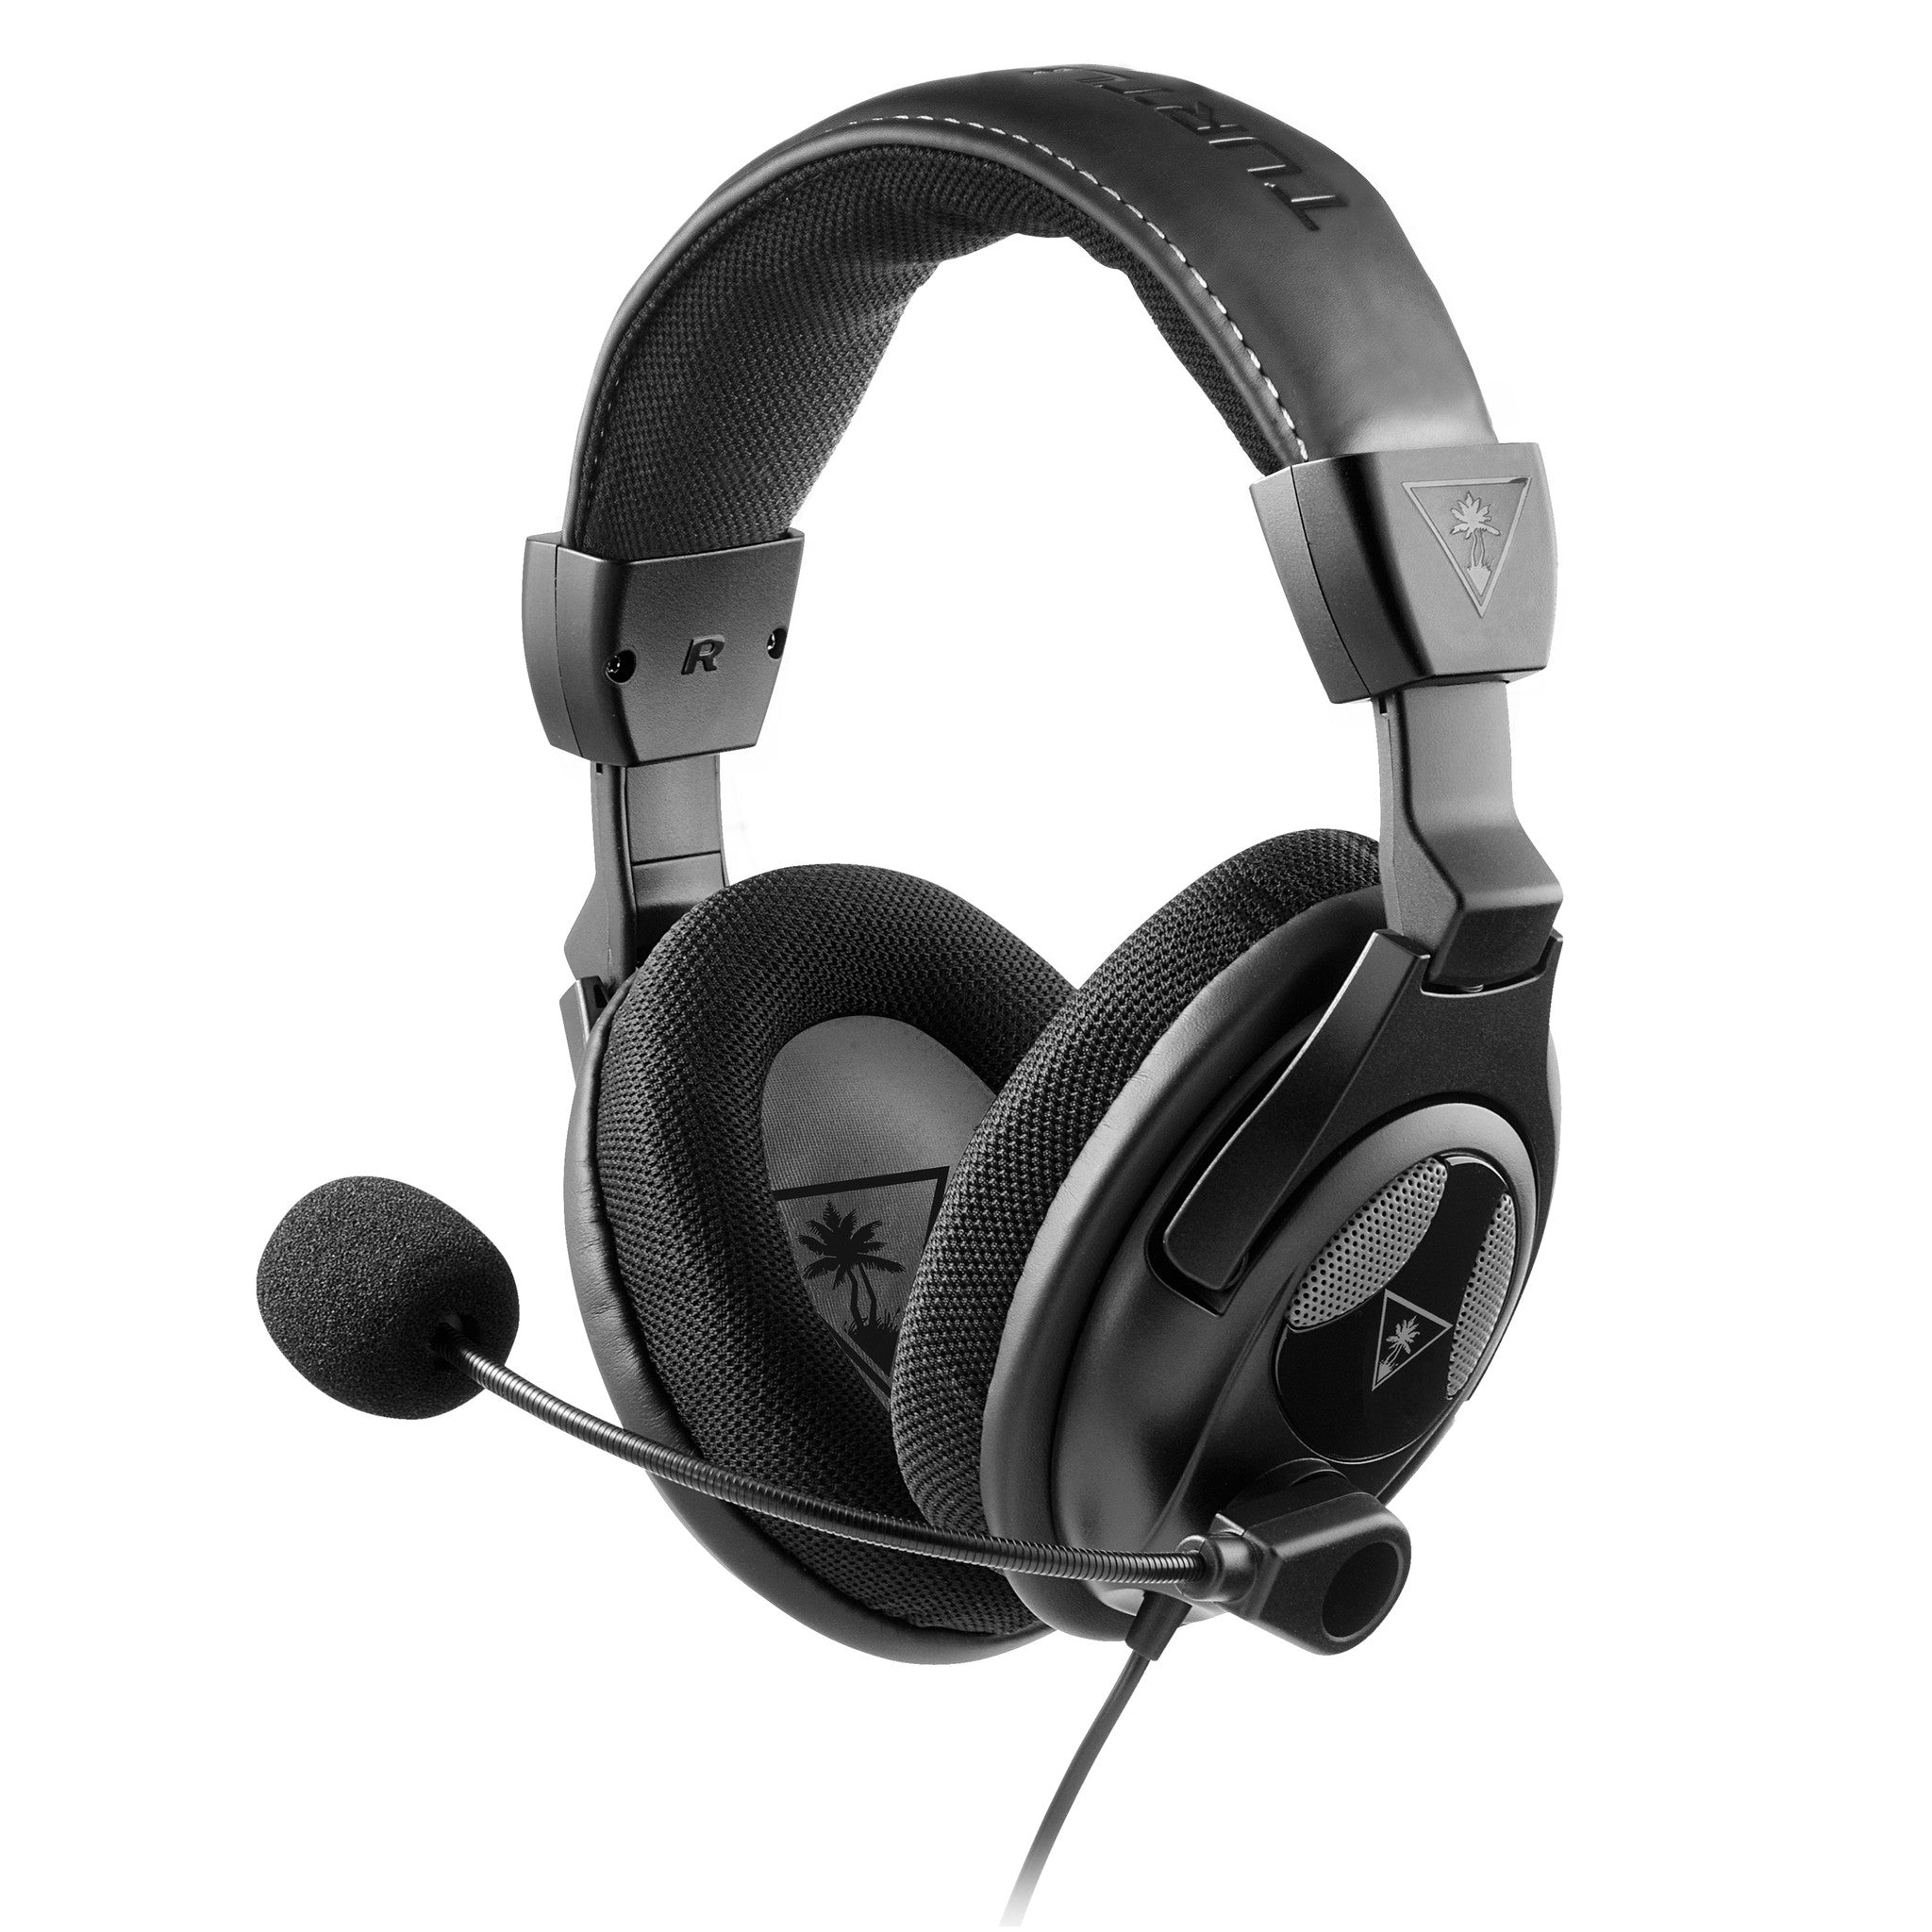 Turtle Beach Ear Force PX24 Multi platform headset